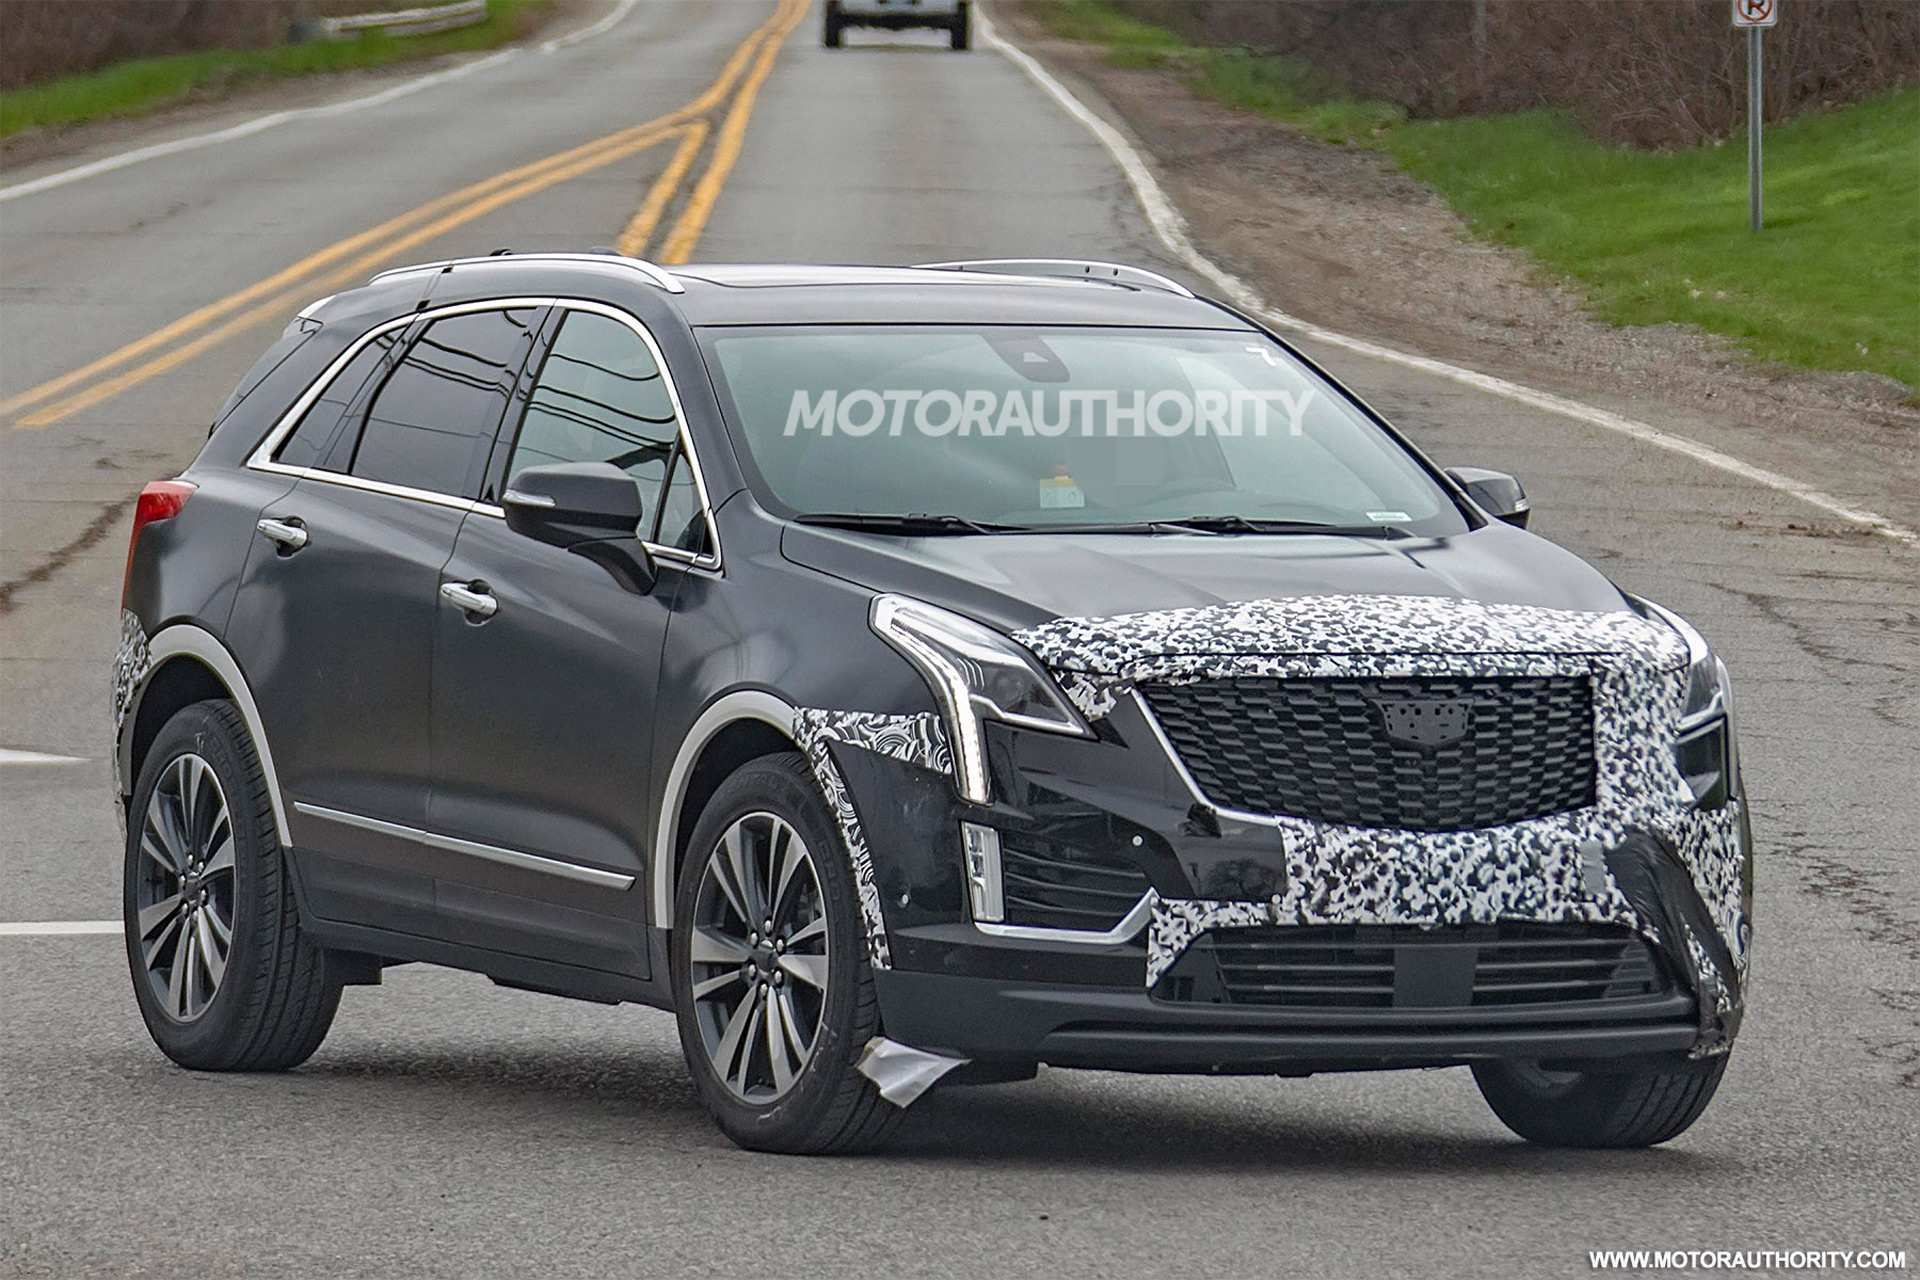 90 A 2019 Spy Shots Cadillac Xt5 Pictures